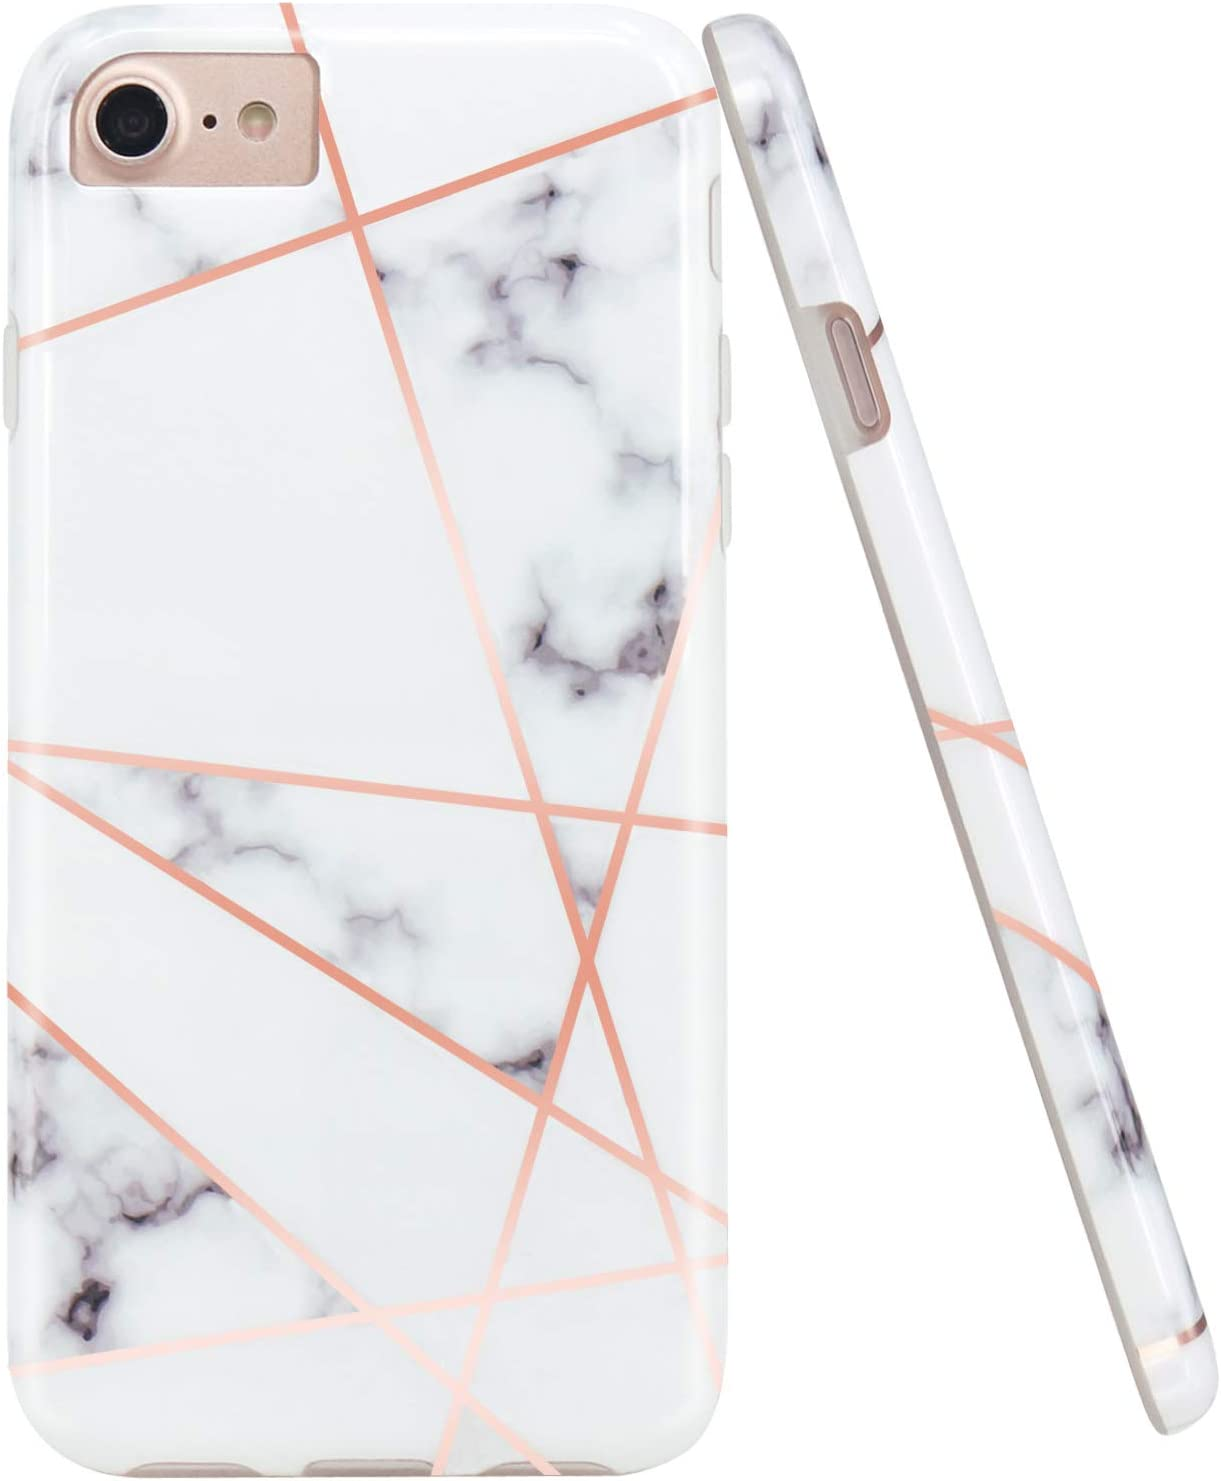 JAHOLAN Shiny Rose Gold Geometric White Marble Design Clear Bumper Glossy TPU Soft Rubber Silicone Cover Phone Case Compatible with iPhone 7 iPhone 8 iPhone 6 6S iPhone SE 2020